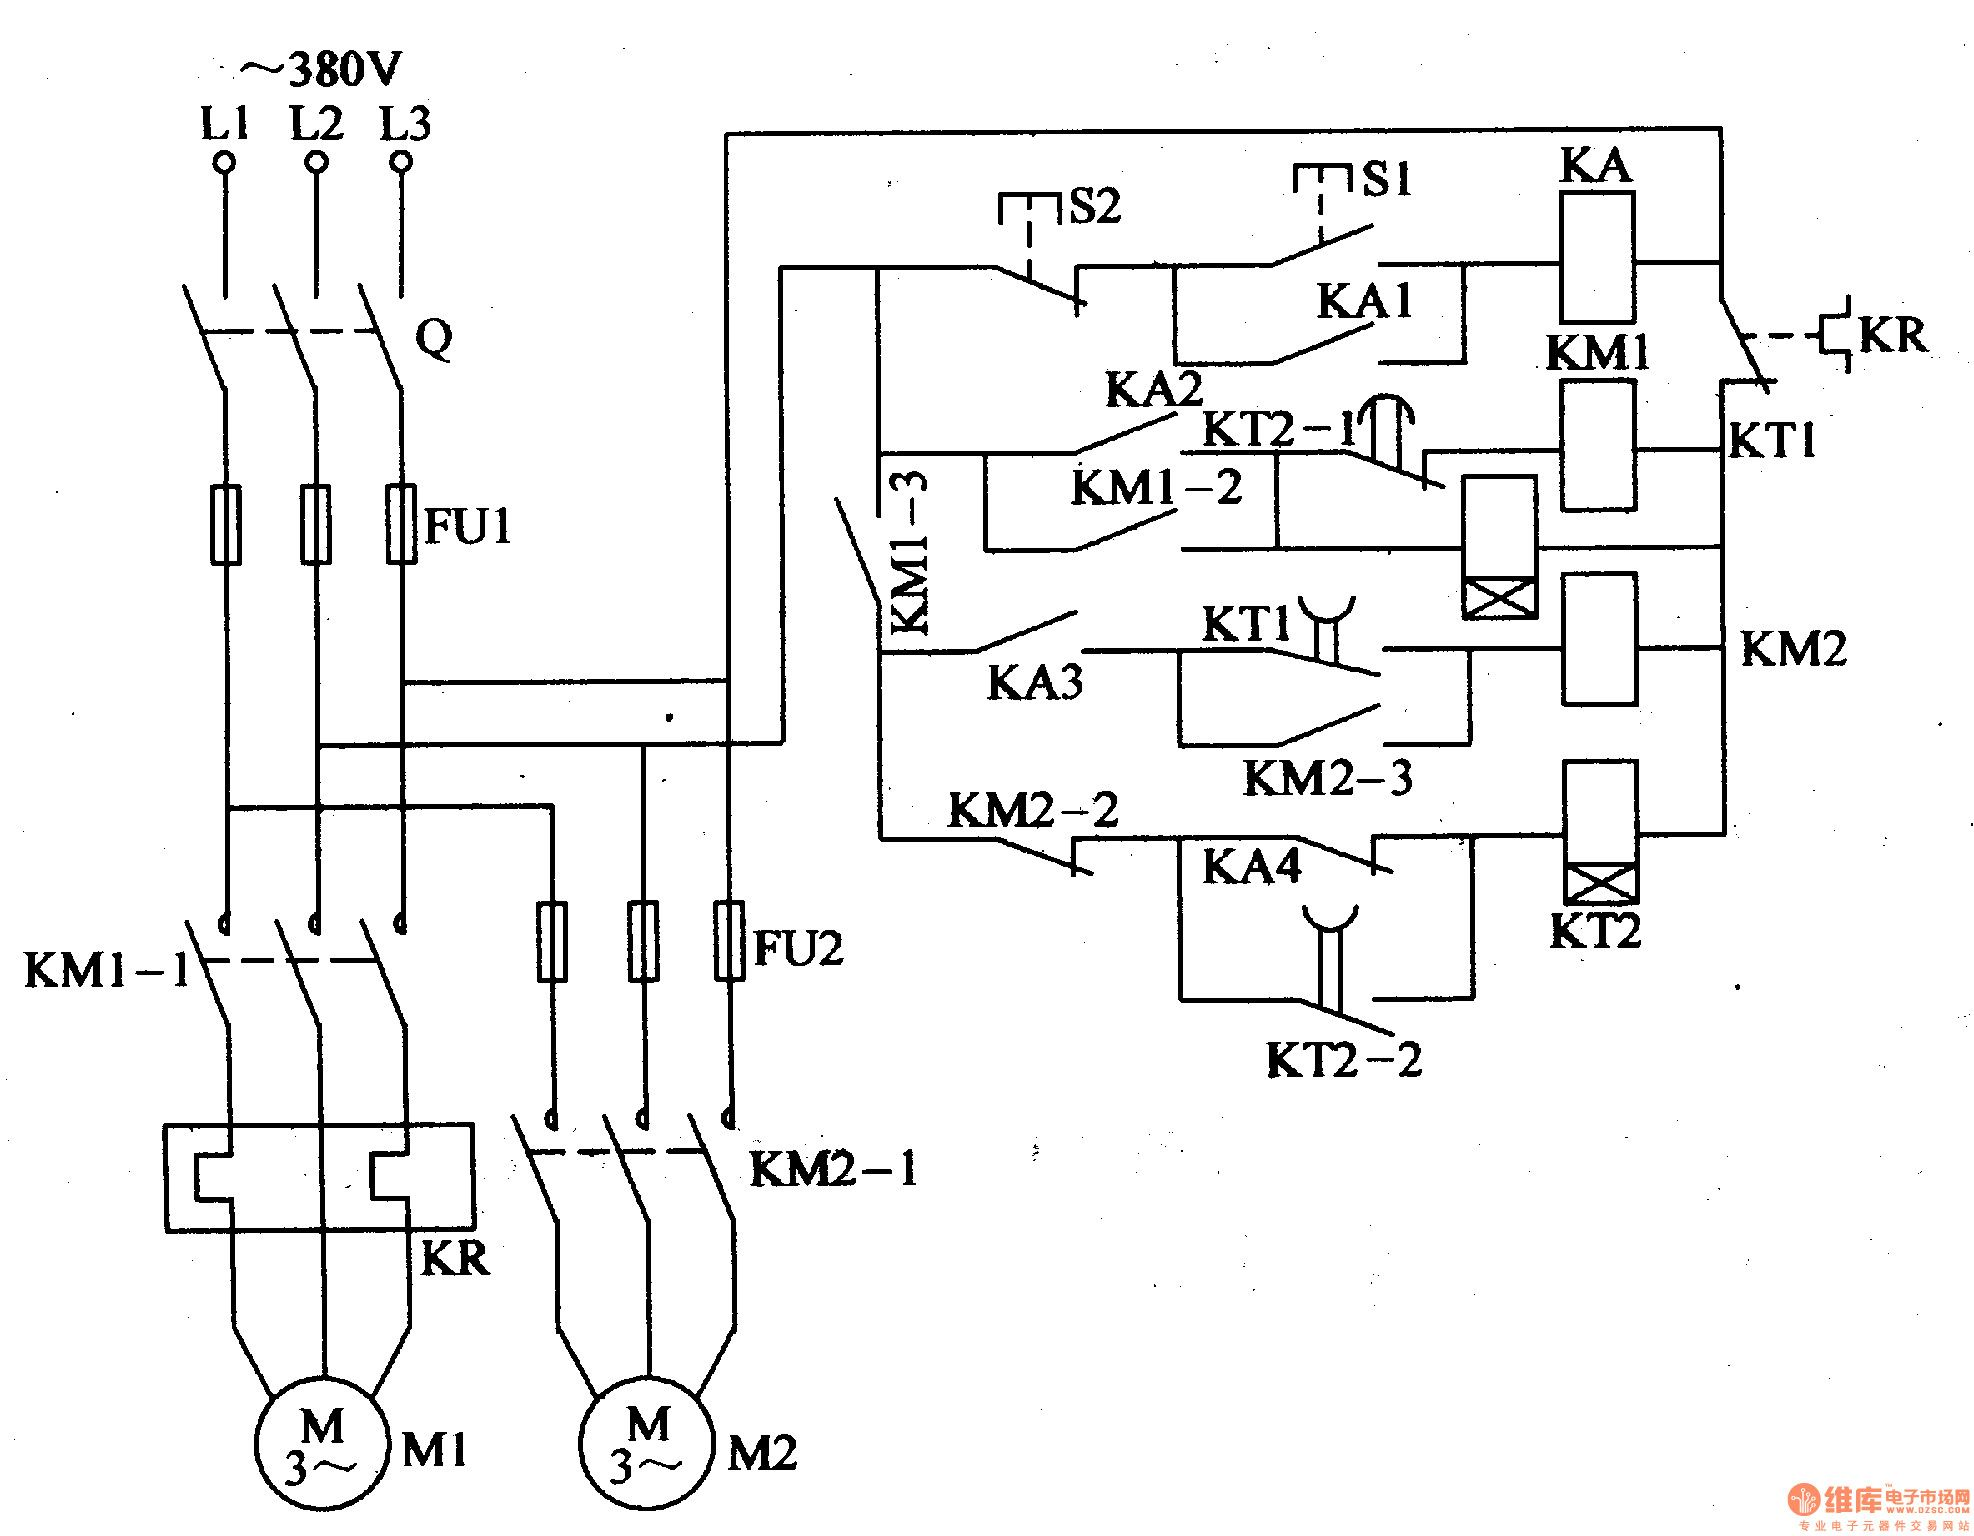 hight resolution of square d panelboard wiring diagram wiring diagrams trigg square d panelboard wiring diagram